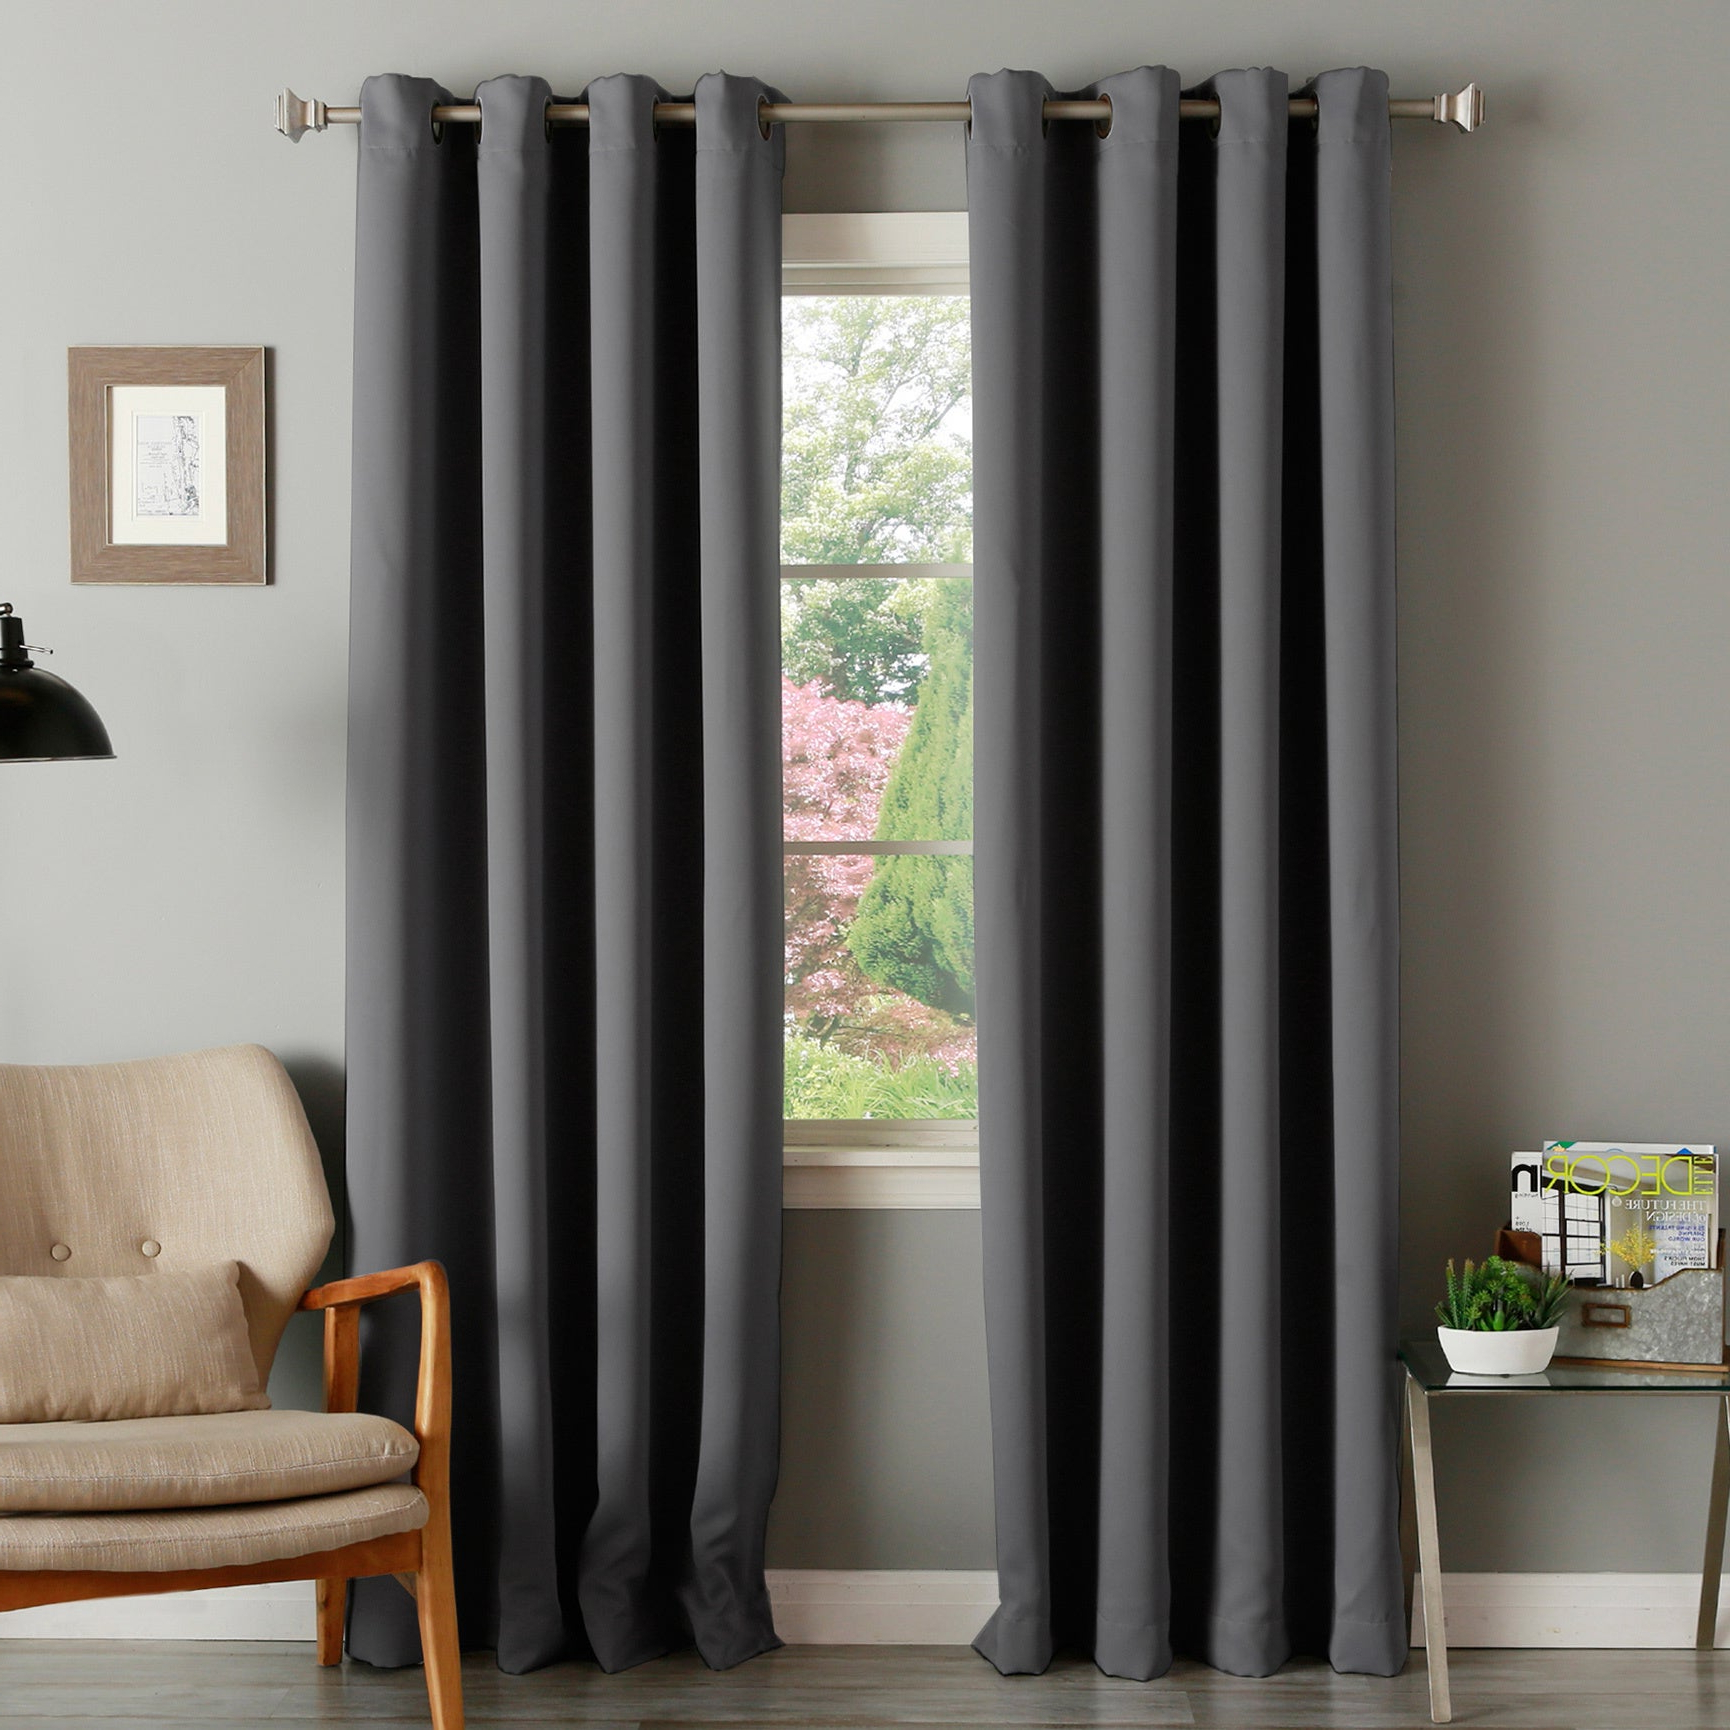 Well Liked Aurora Home Thermal Insulated Blackout Grommet Top 84 Inch Curtain Panel Pair – 52 X 84 With Regard To Solid Insulated Thermal Blackout Curtain Panel Pairs (View 11 of 20)